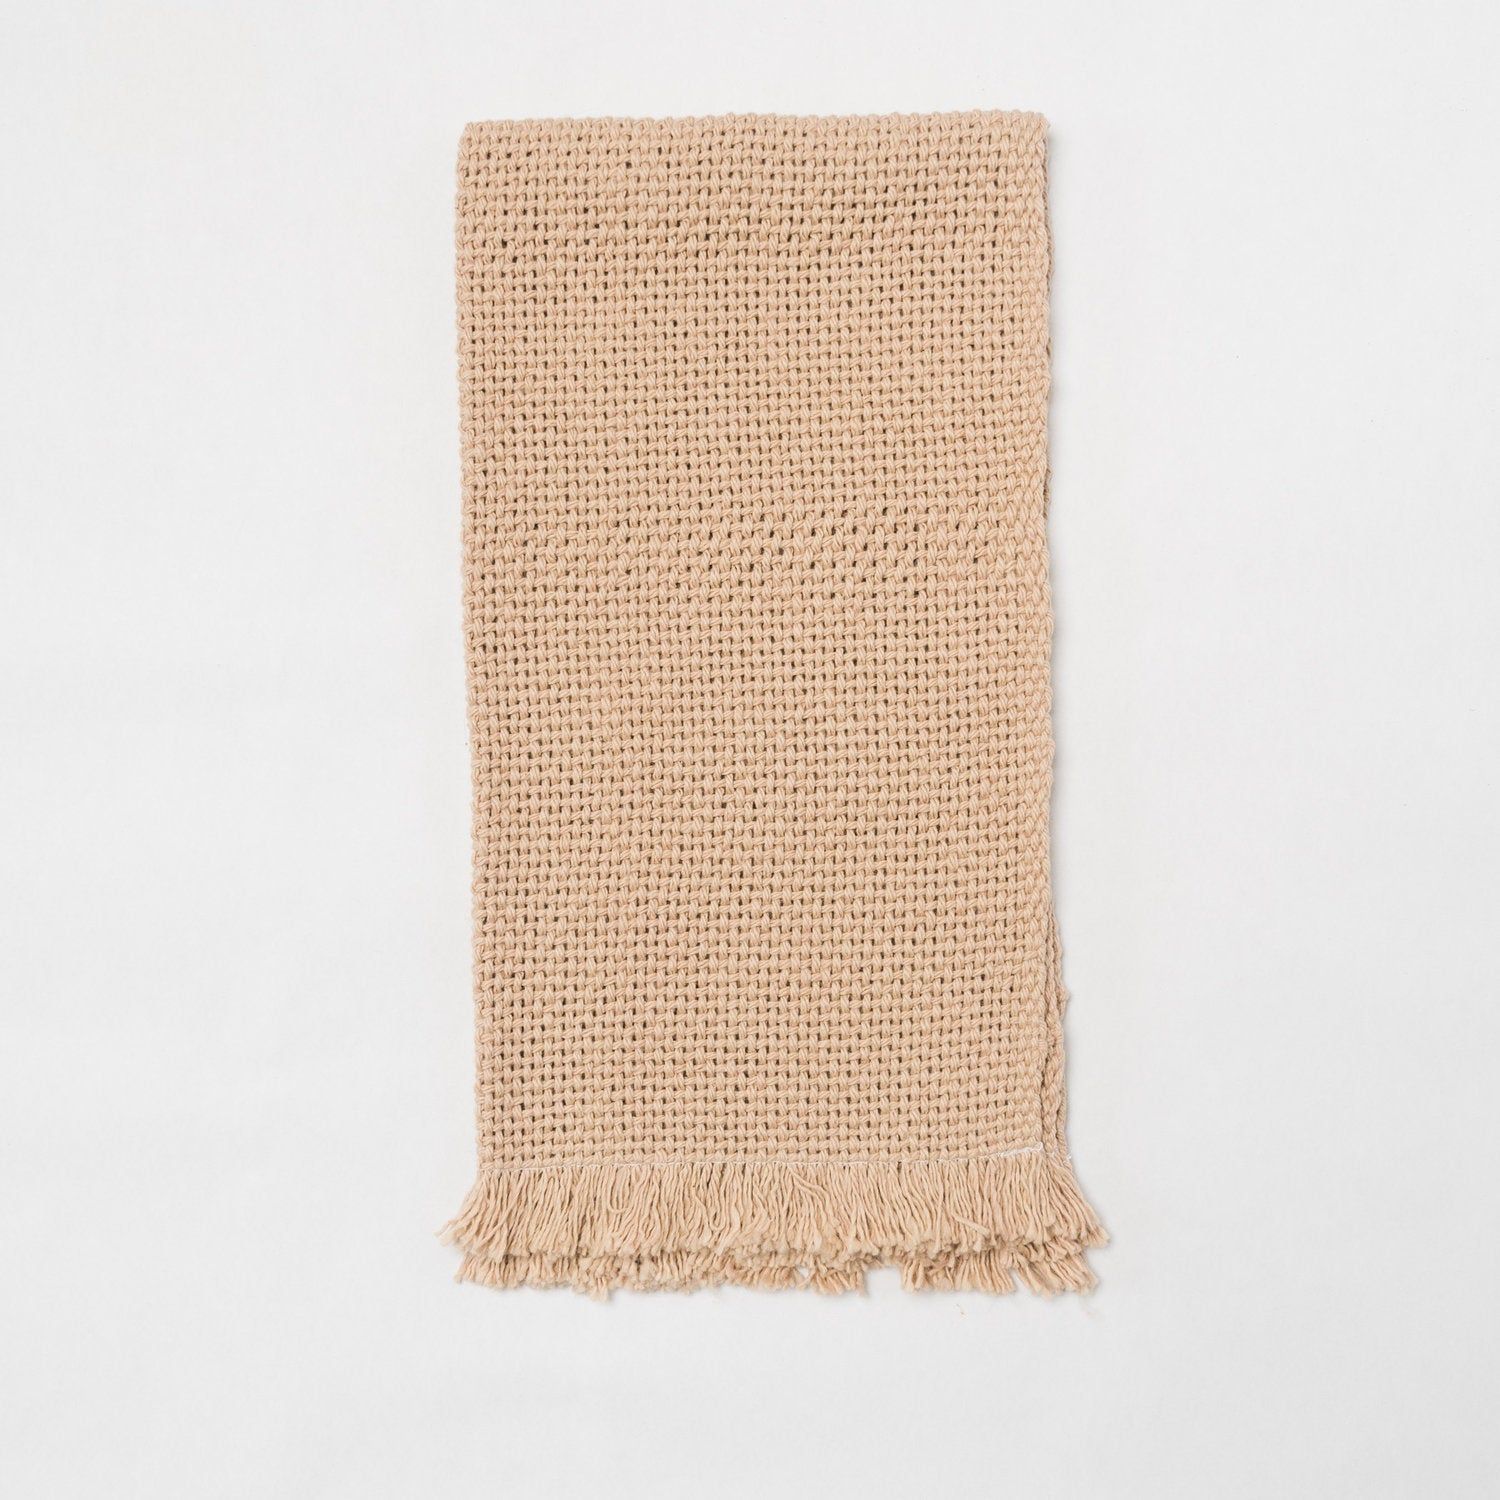 KD Weave Tan Hand Towel, Set of 2